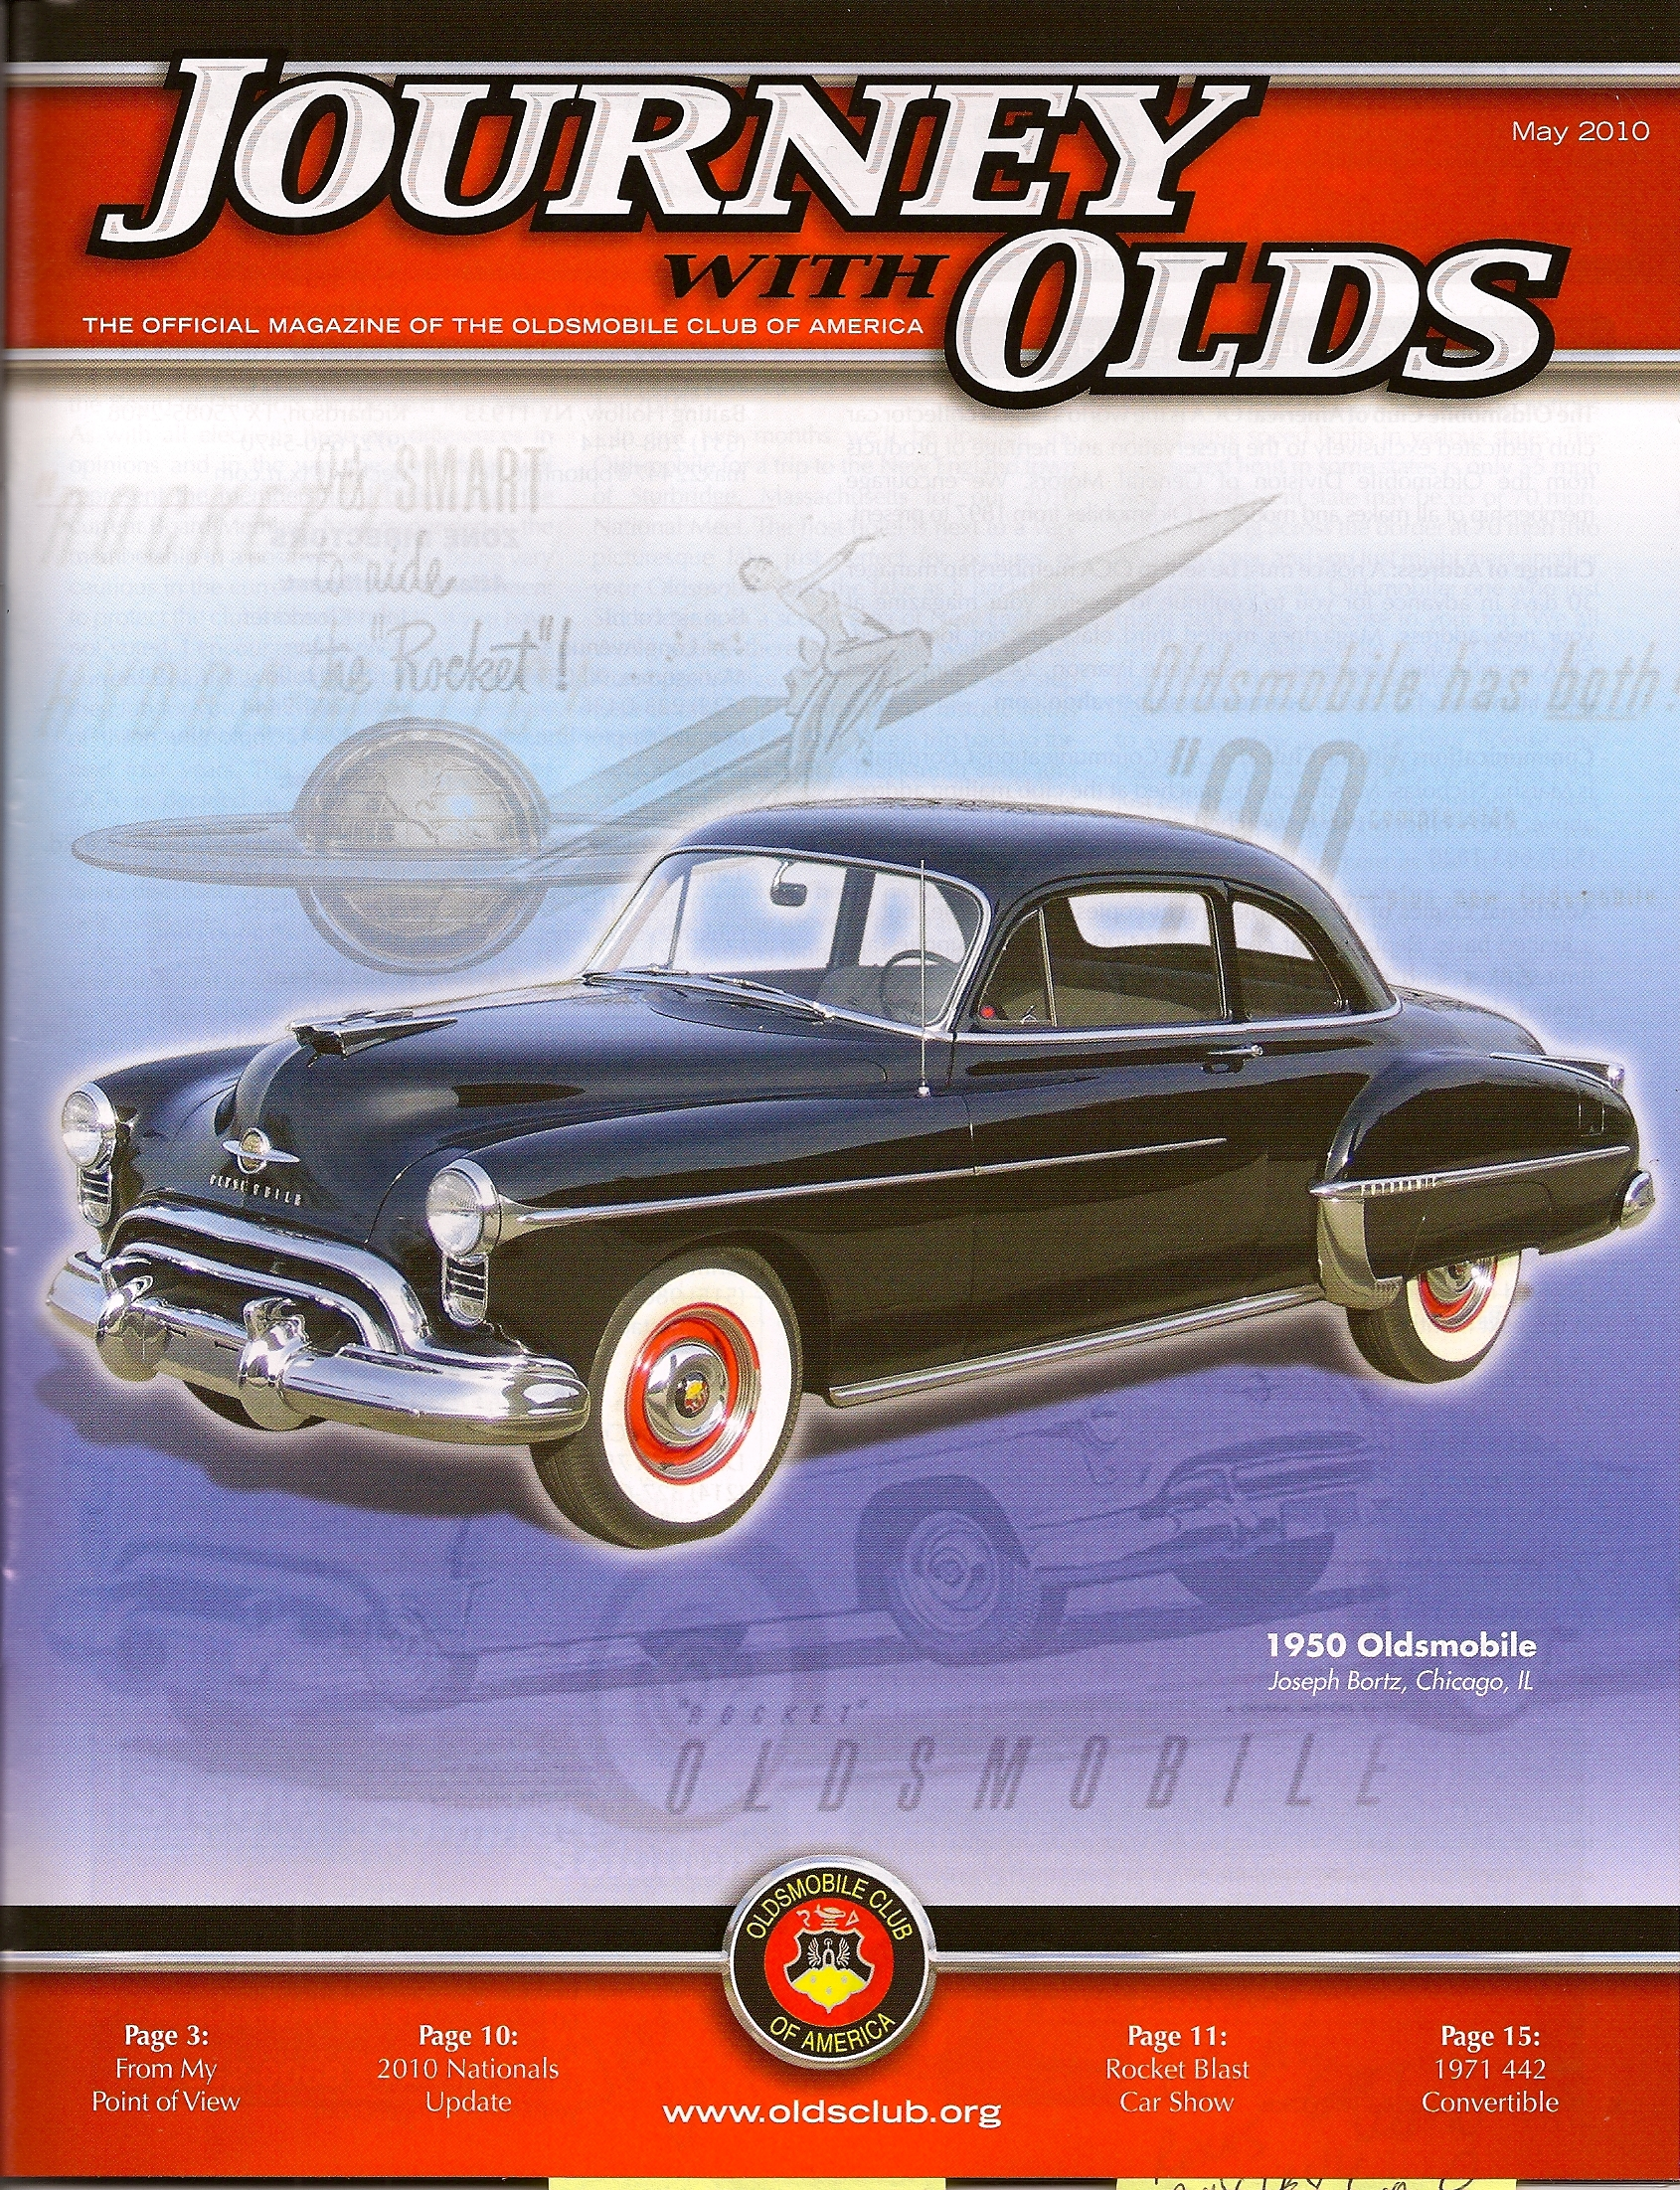 1950 Oldsmobile Bubble Top, journey with the olds